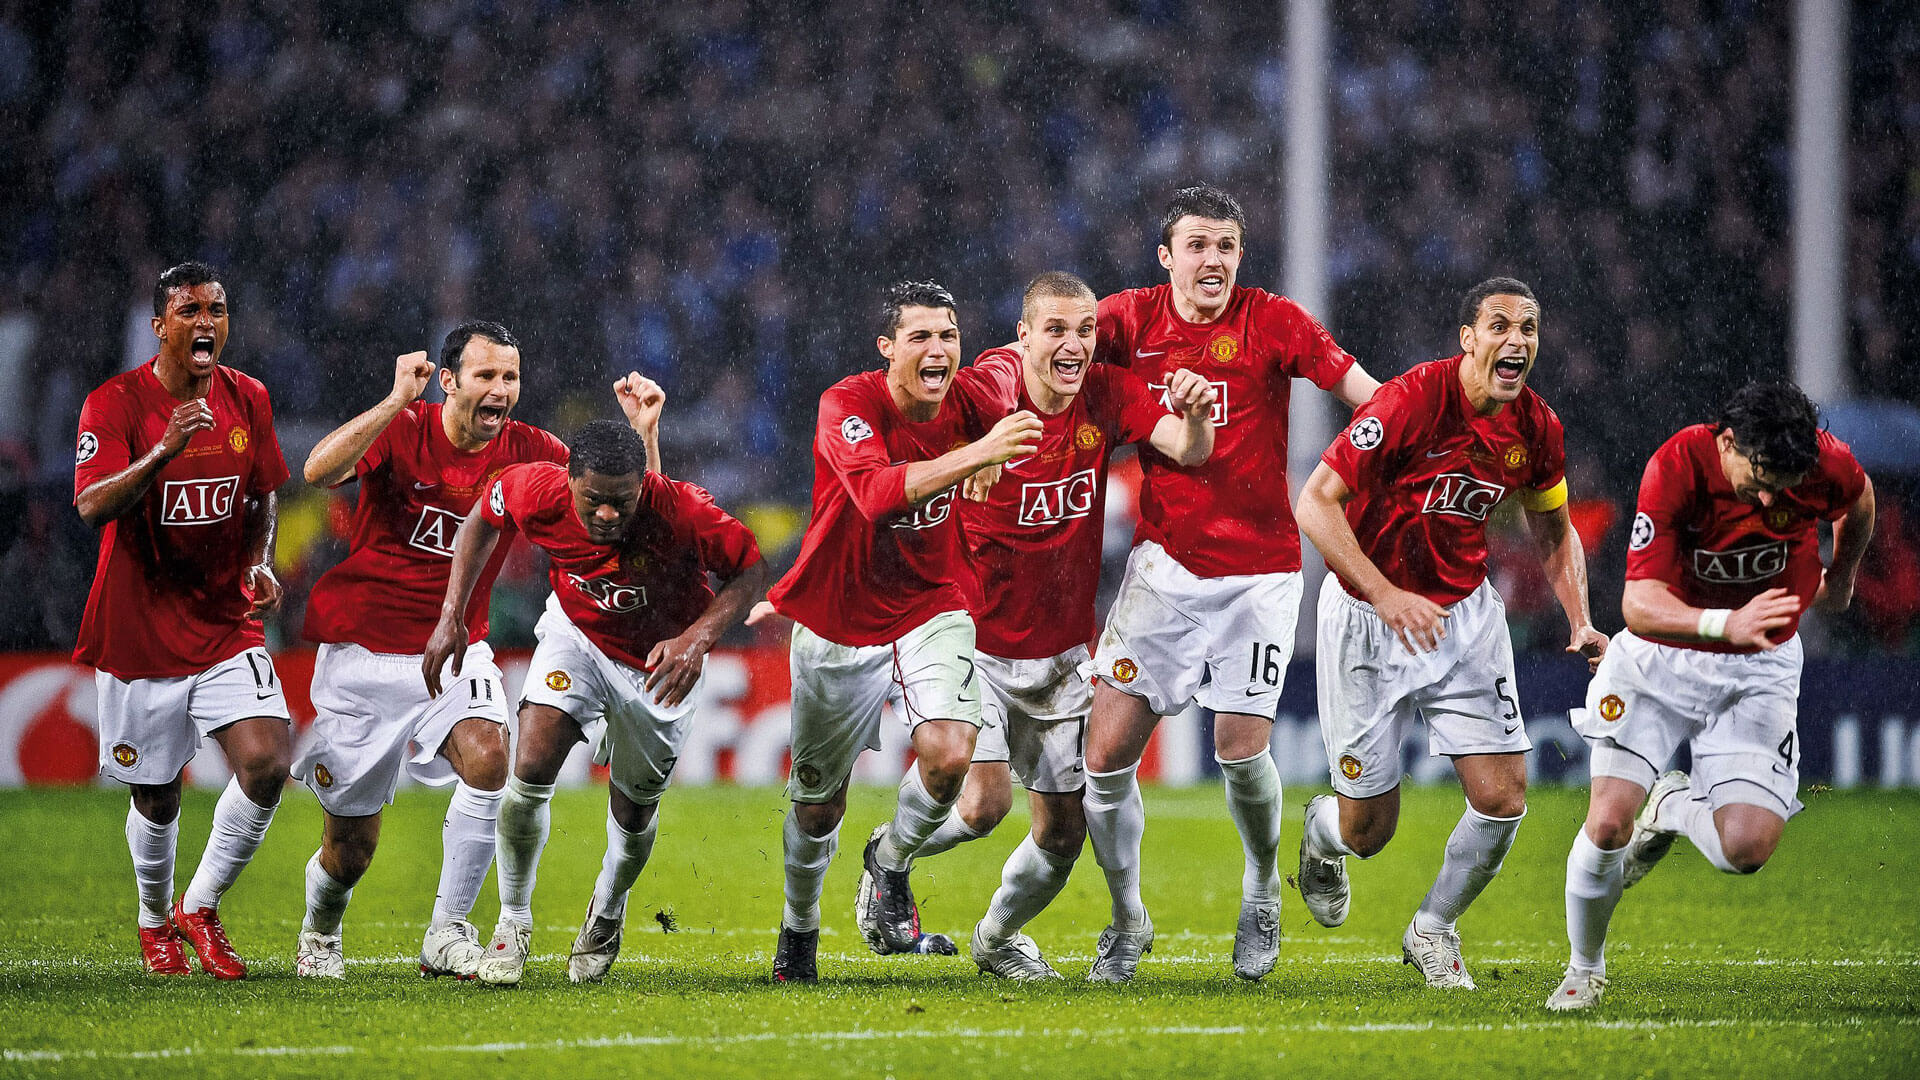 2008 Champions League Win